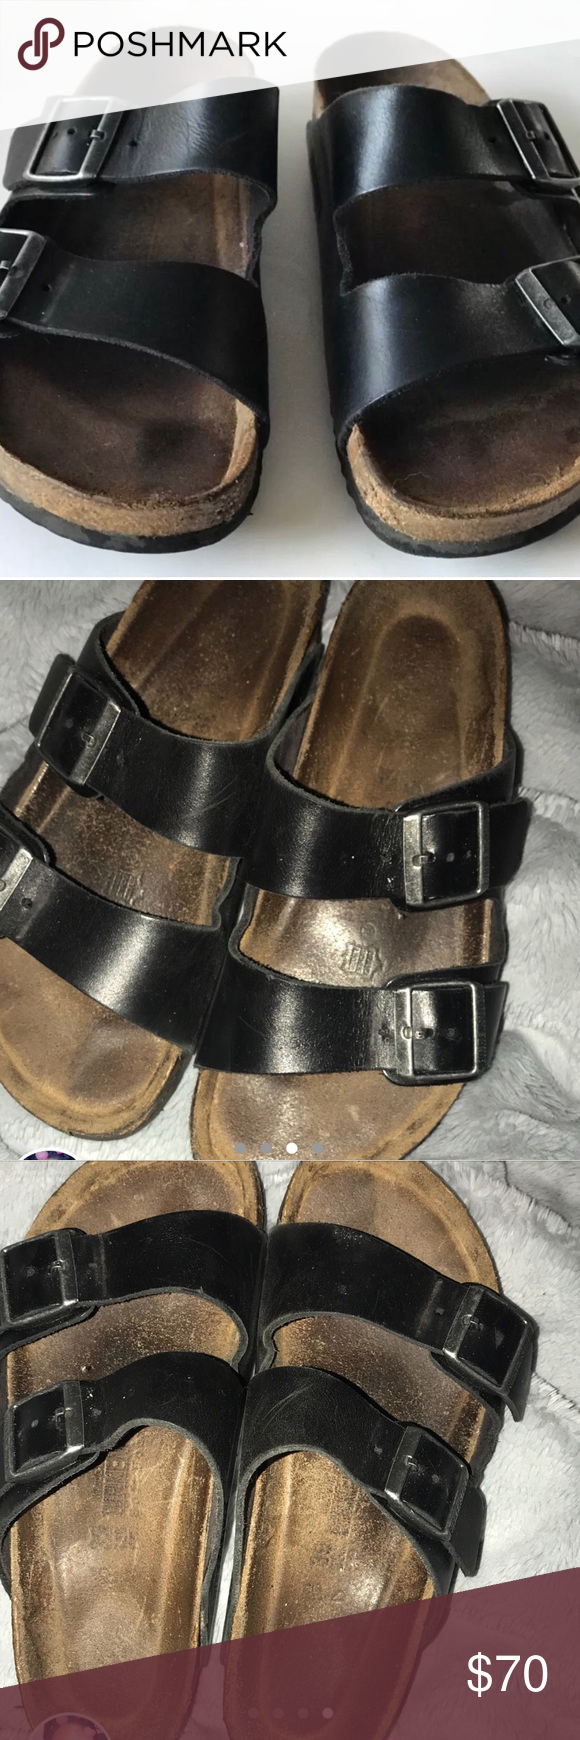 55ff202c6ea BLACK BIRKENSTOCKS size 39 Got these from a seller but they were too small  for my